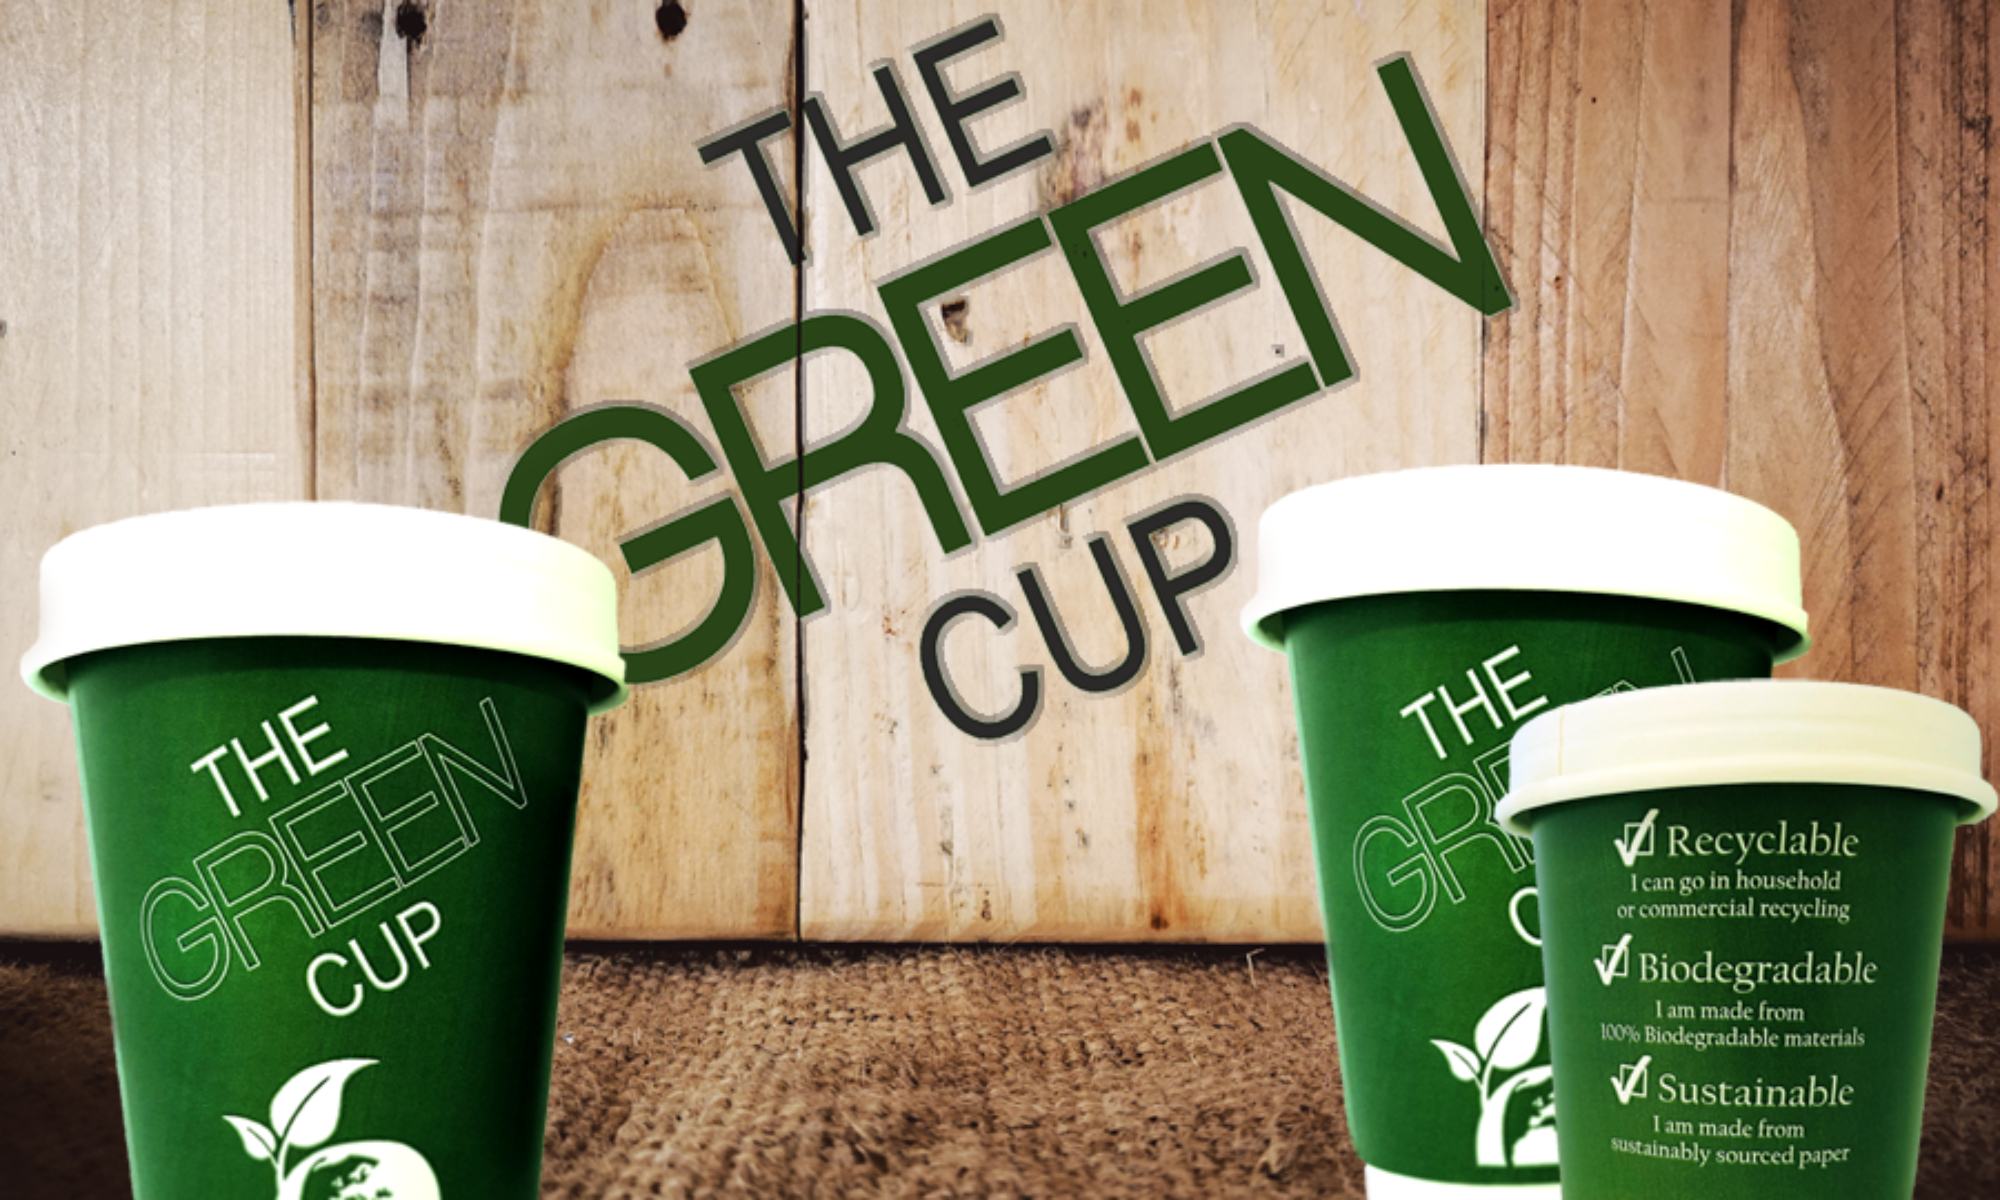 The Green Cup